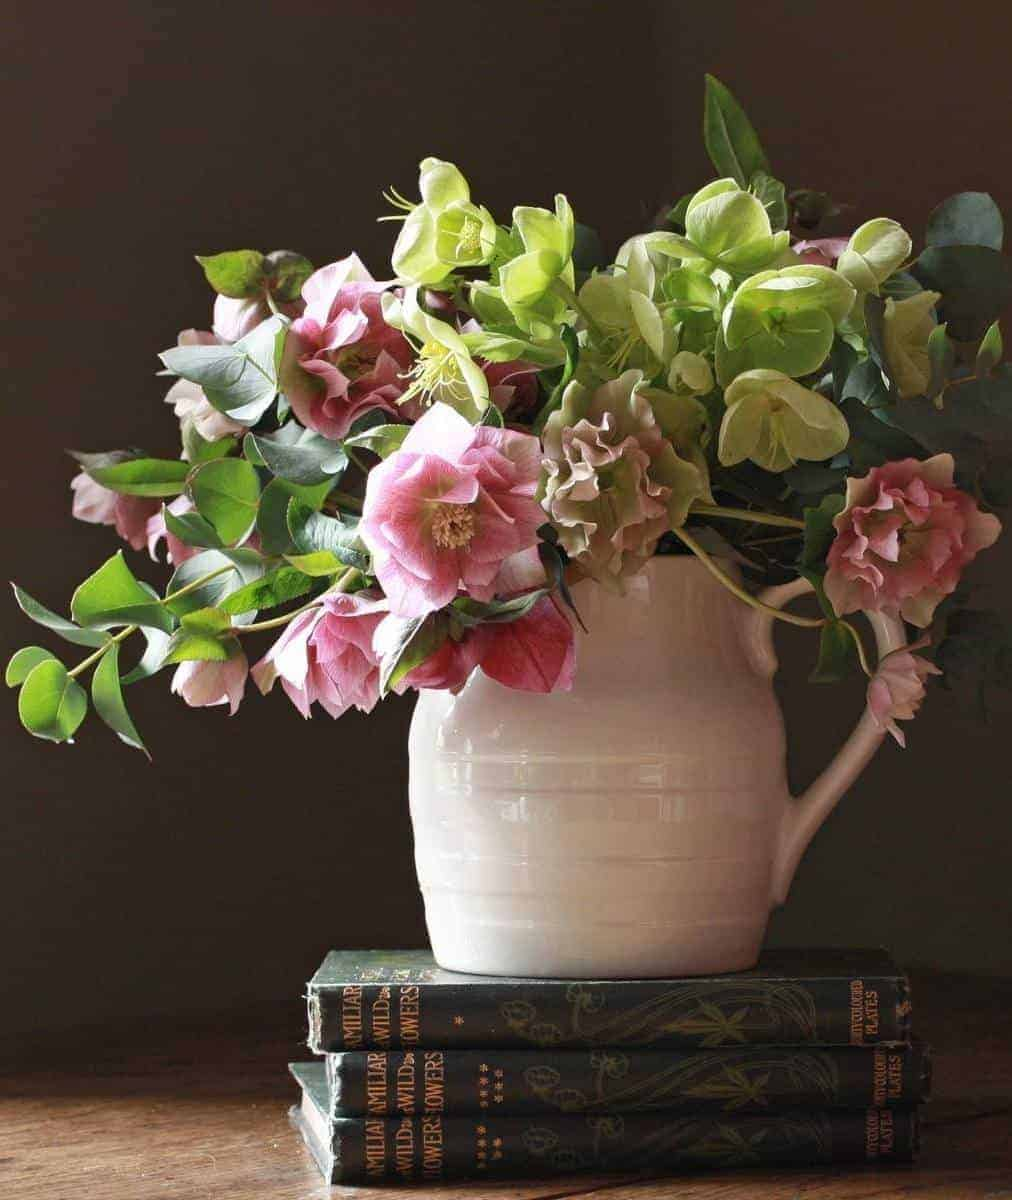 love these blush pink and lime green hellebores in a white creamware jug. by The Real Flower company - scented paperwhite narcissi, yellow rununculus and daffodils with fresh spring green eucaluptus and aromatic fresh mint. Click through for more beautiful spring flower arrangement ideas you'll love